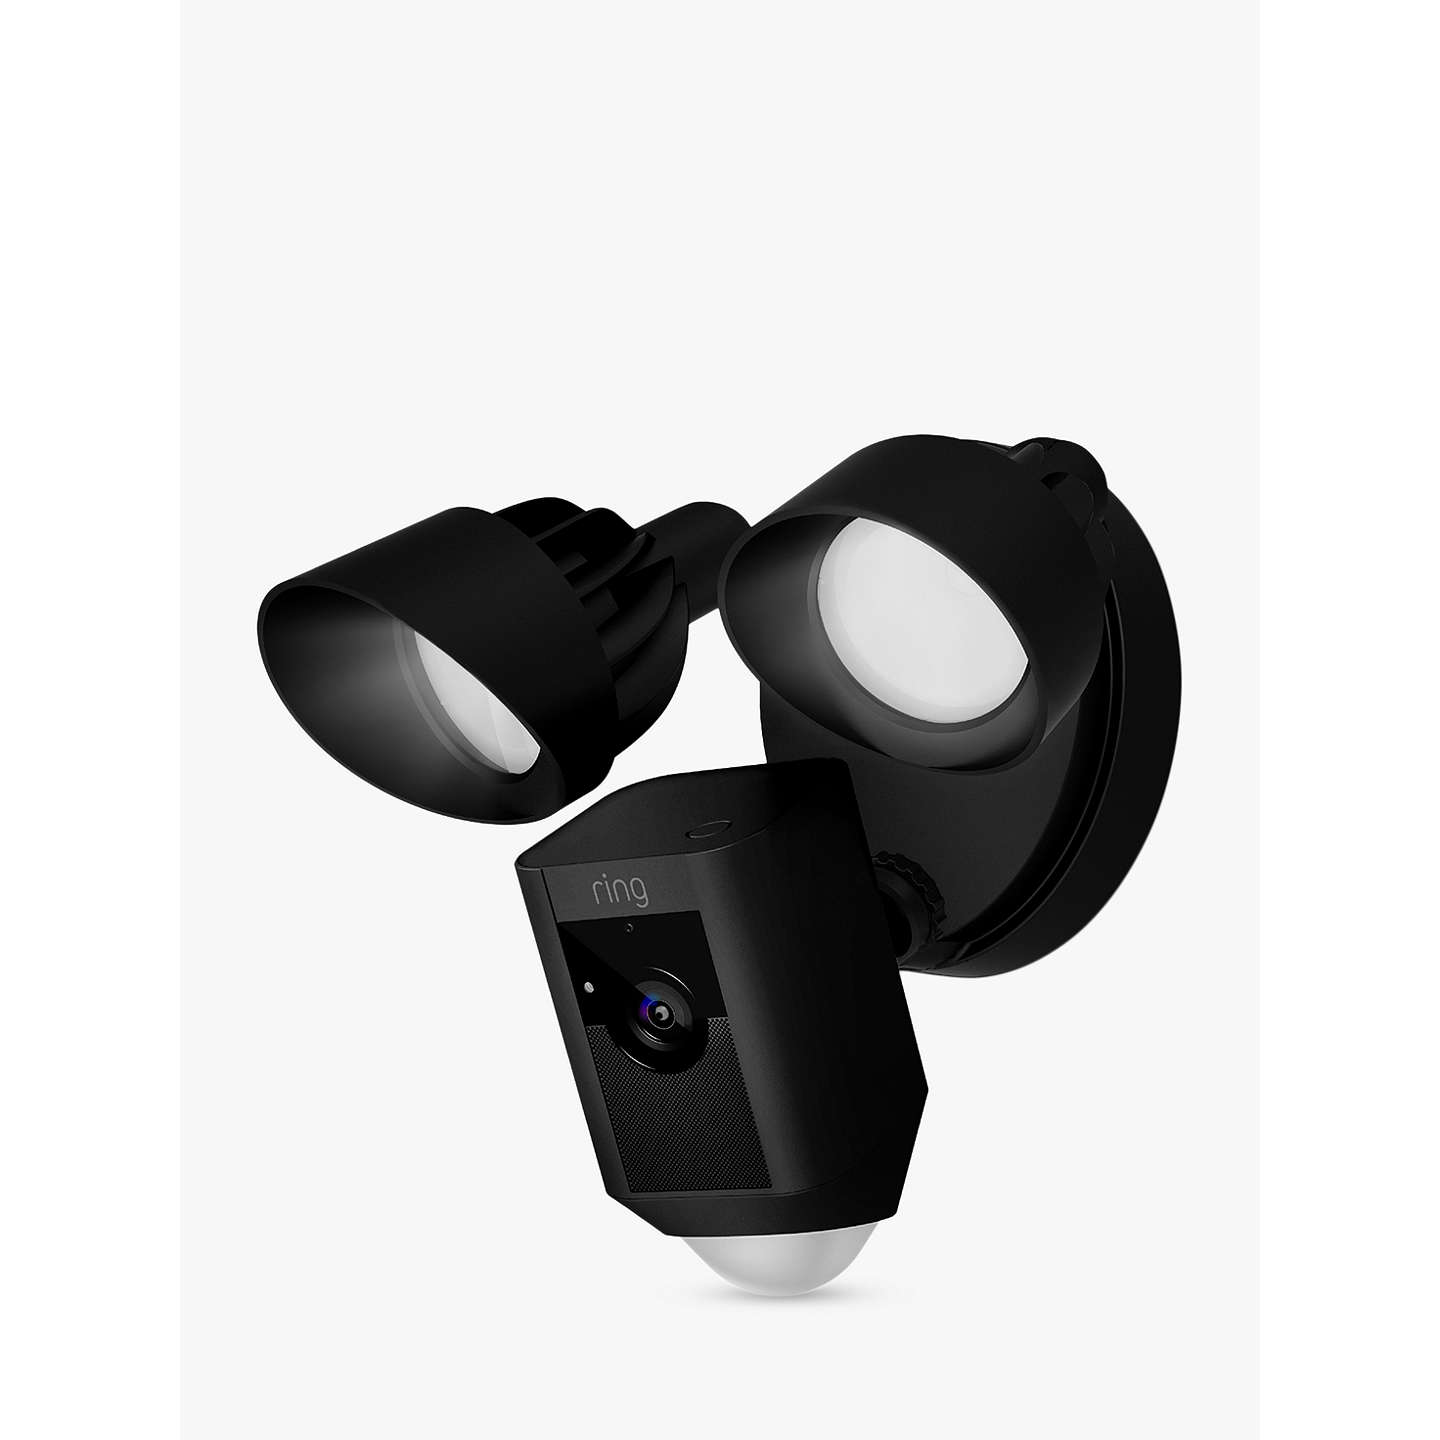 BuyRing Floodlight Cam Smart Security Camera with Built-in Wi-Fi & Siren Alarm, Black Online at johnlewis.com